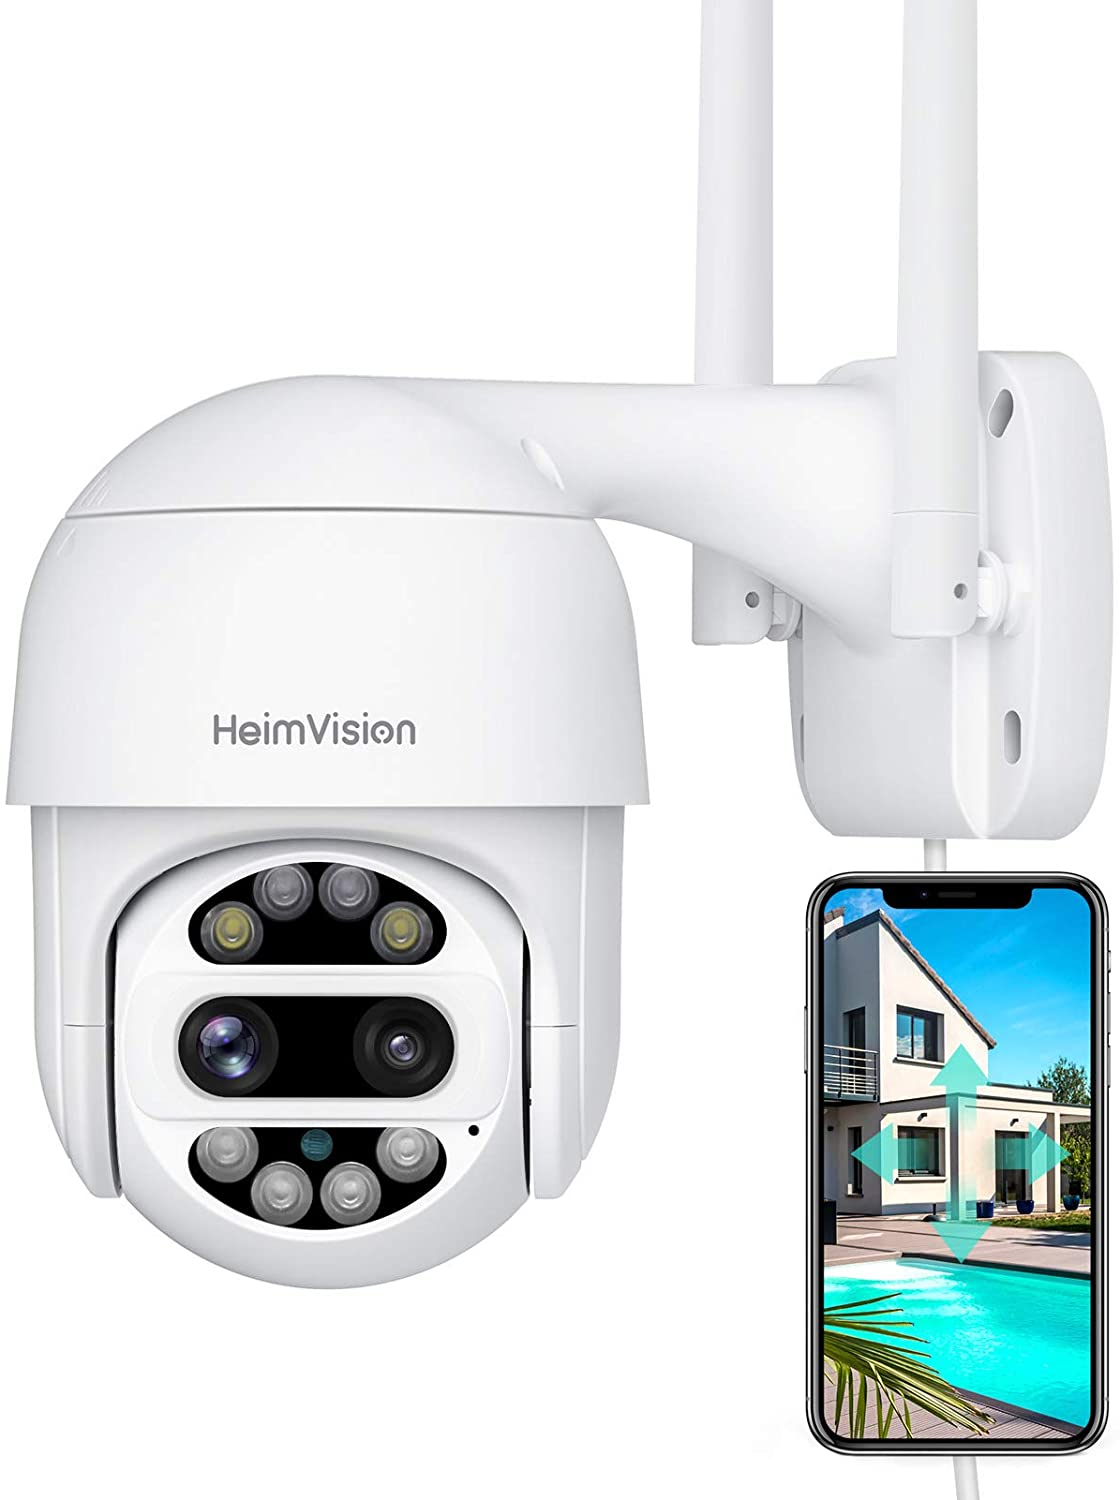 Review of HeimVision PTZ Security Camera Outdoor, 2x2MP Ultra HD Dual Lens